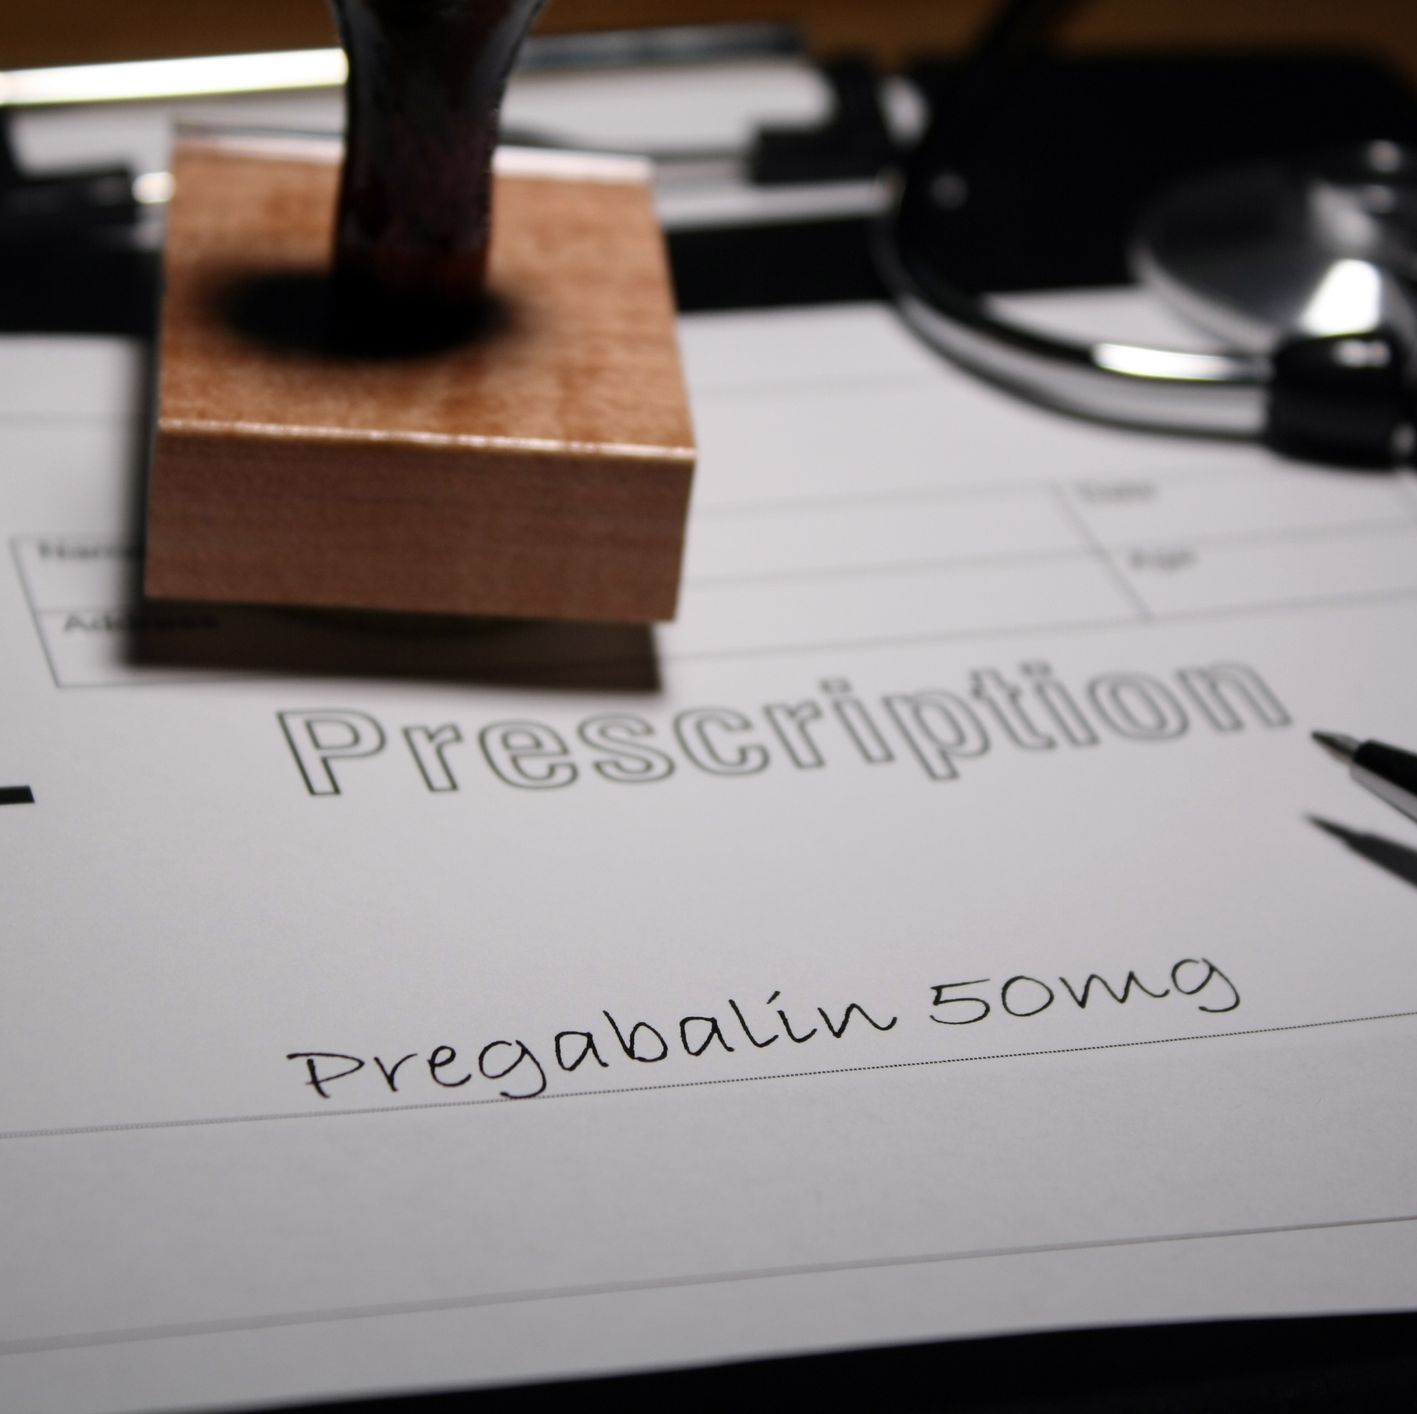 Pregabalin (Lyrica): a medicine used for epilepsy, nerve pain and anxiety